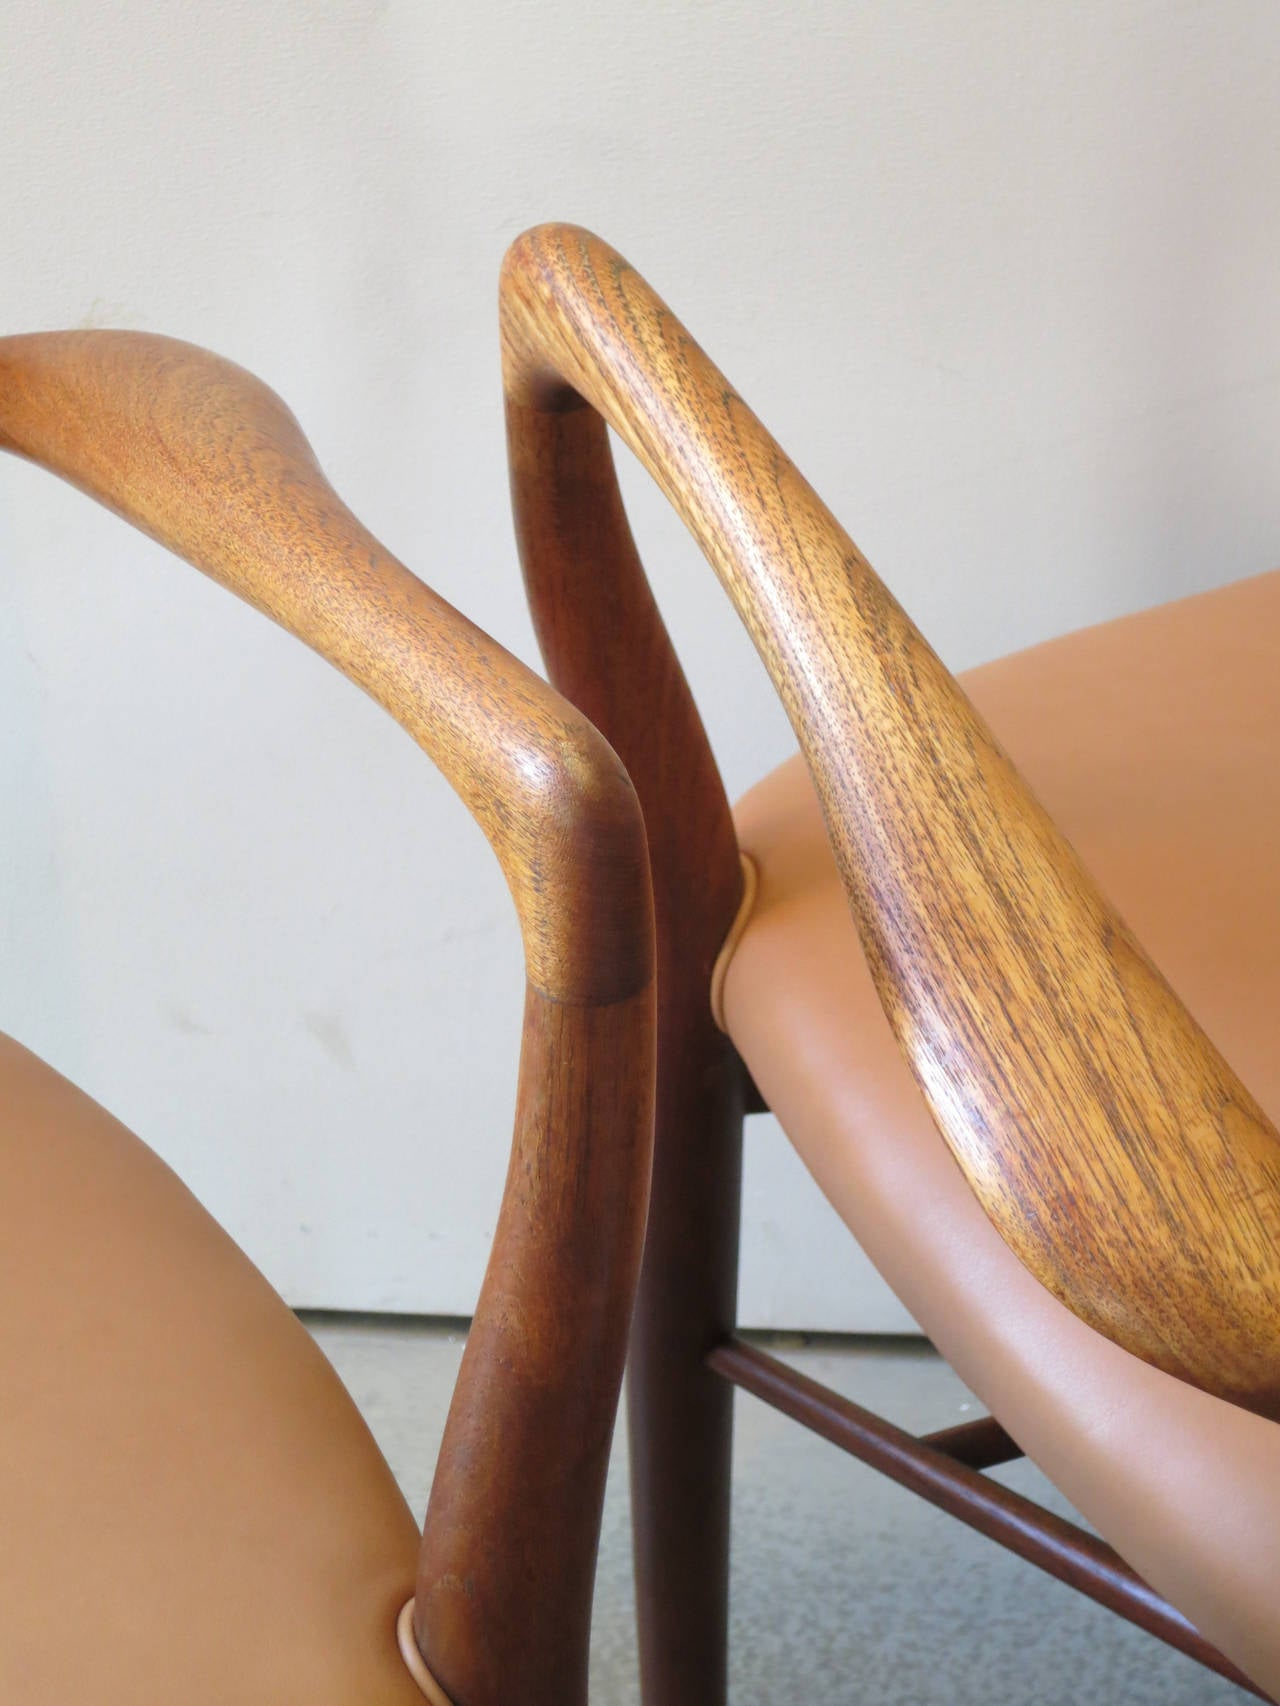 Scandinavian Modern Pair of NV46 Chairs by Finn Juhl in Teak with Natural Leather Upholstery For Sale